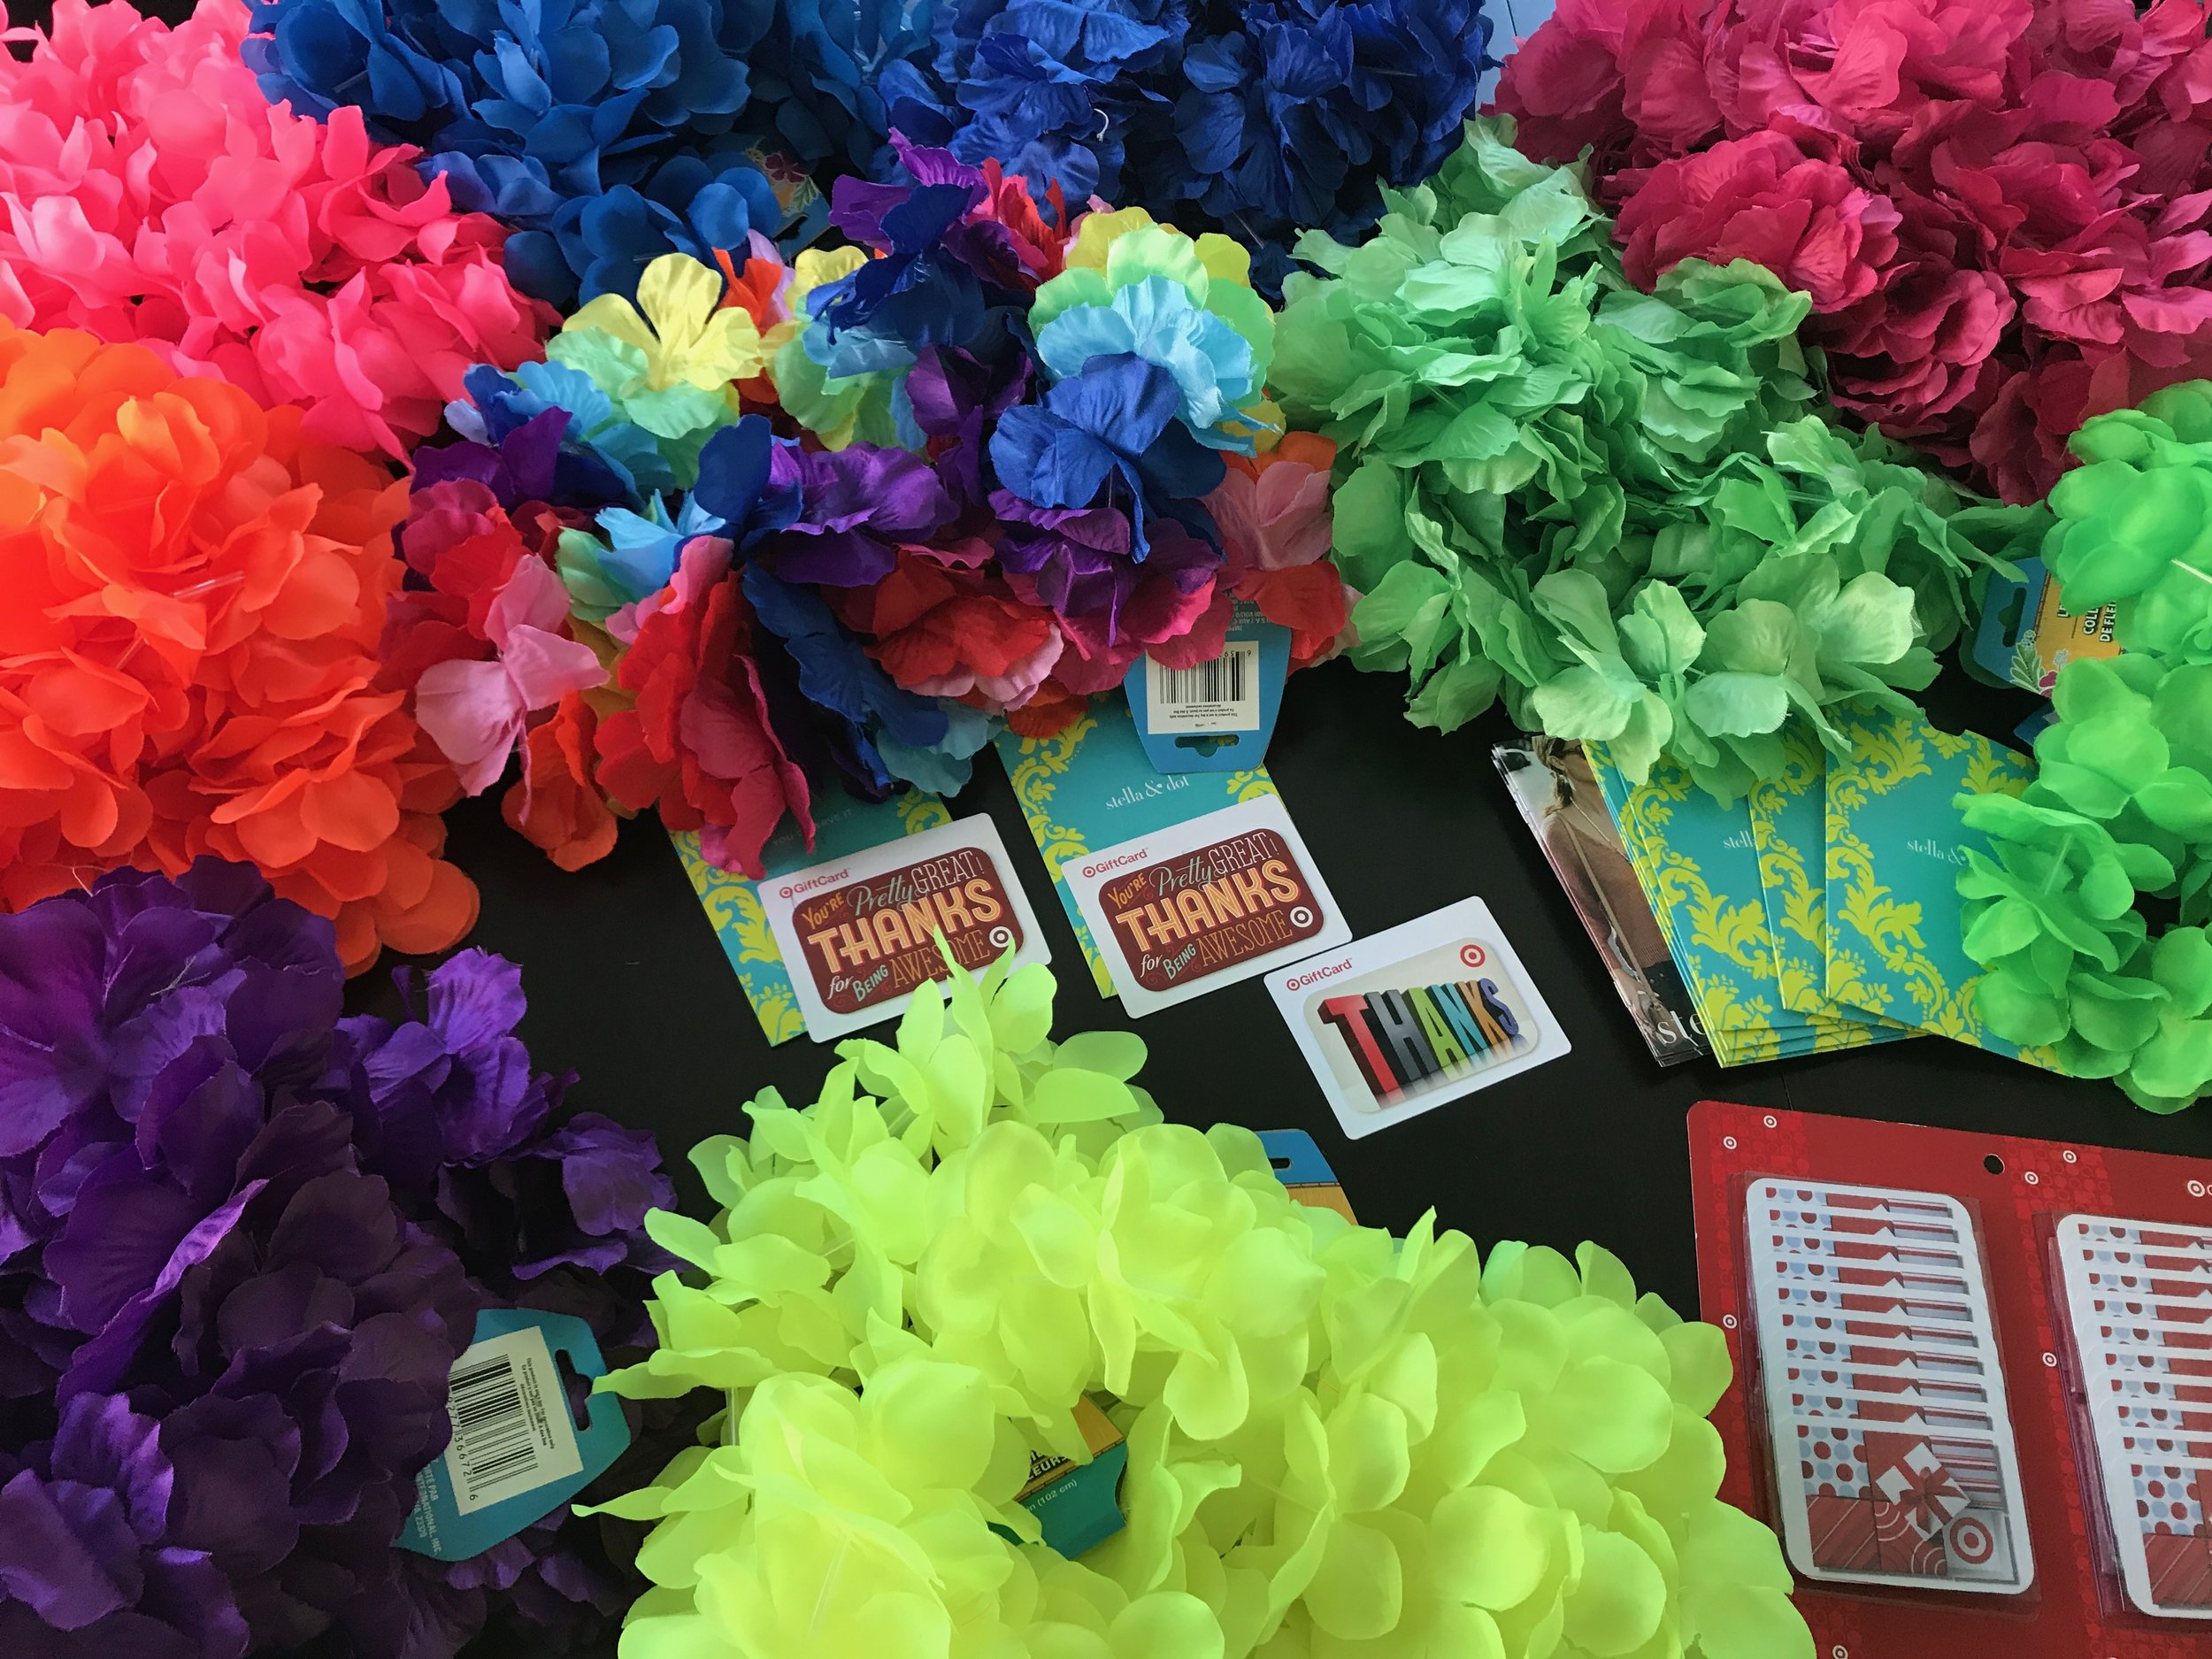 Went to Dollar Tree and bought 24 leis. Already have the Stella & Dot , Amazon and Target gift cards. Just need Barnes & Noble and Starbucks gift cards. The main teachers get the rainbow leis.